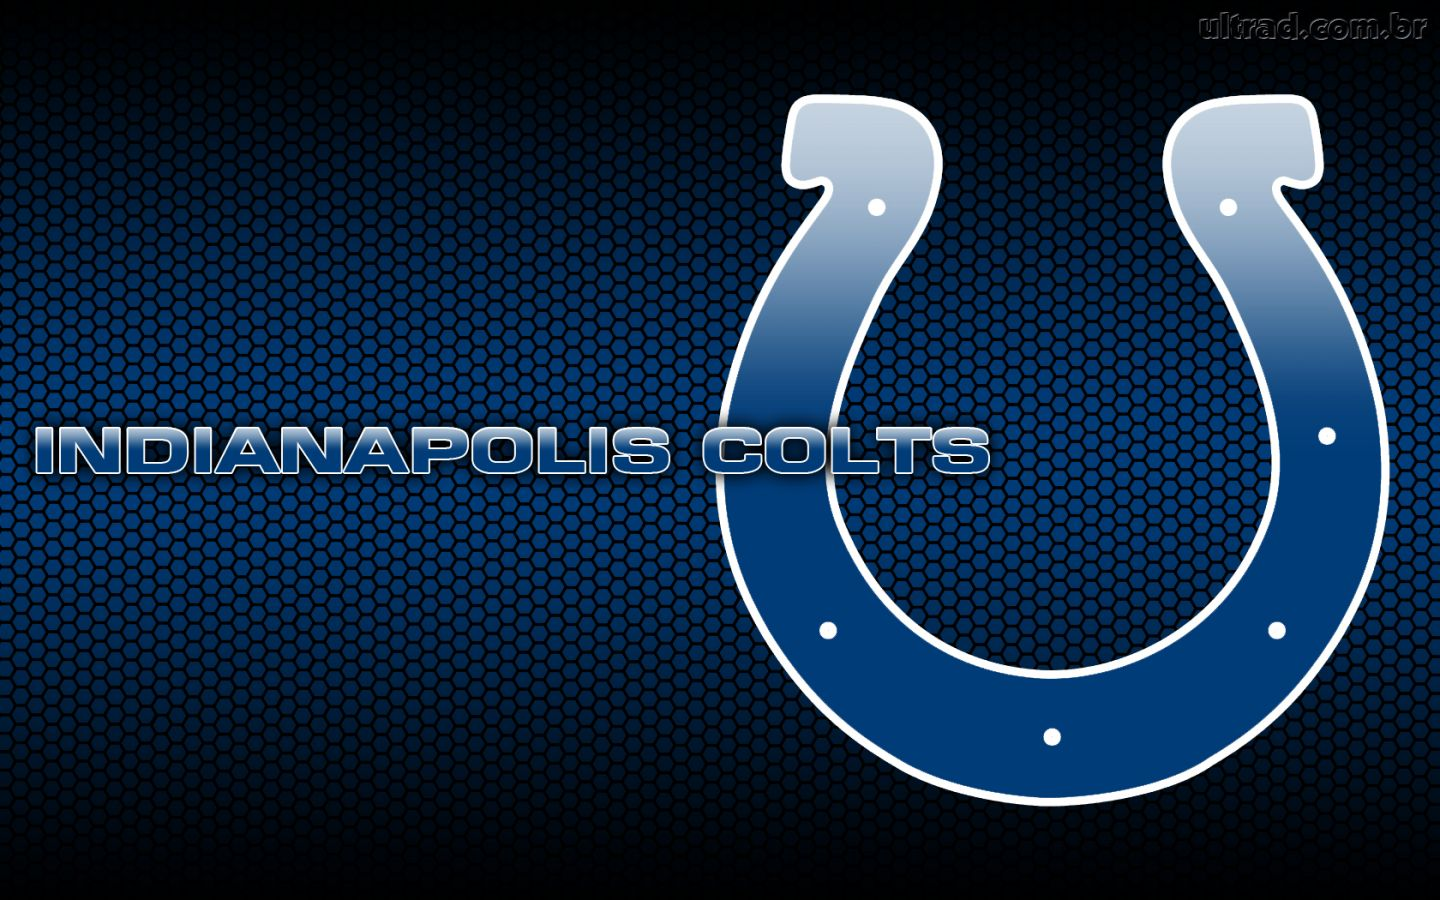 Indianapolis Colts Wallpapers